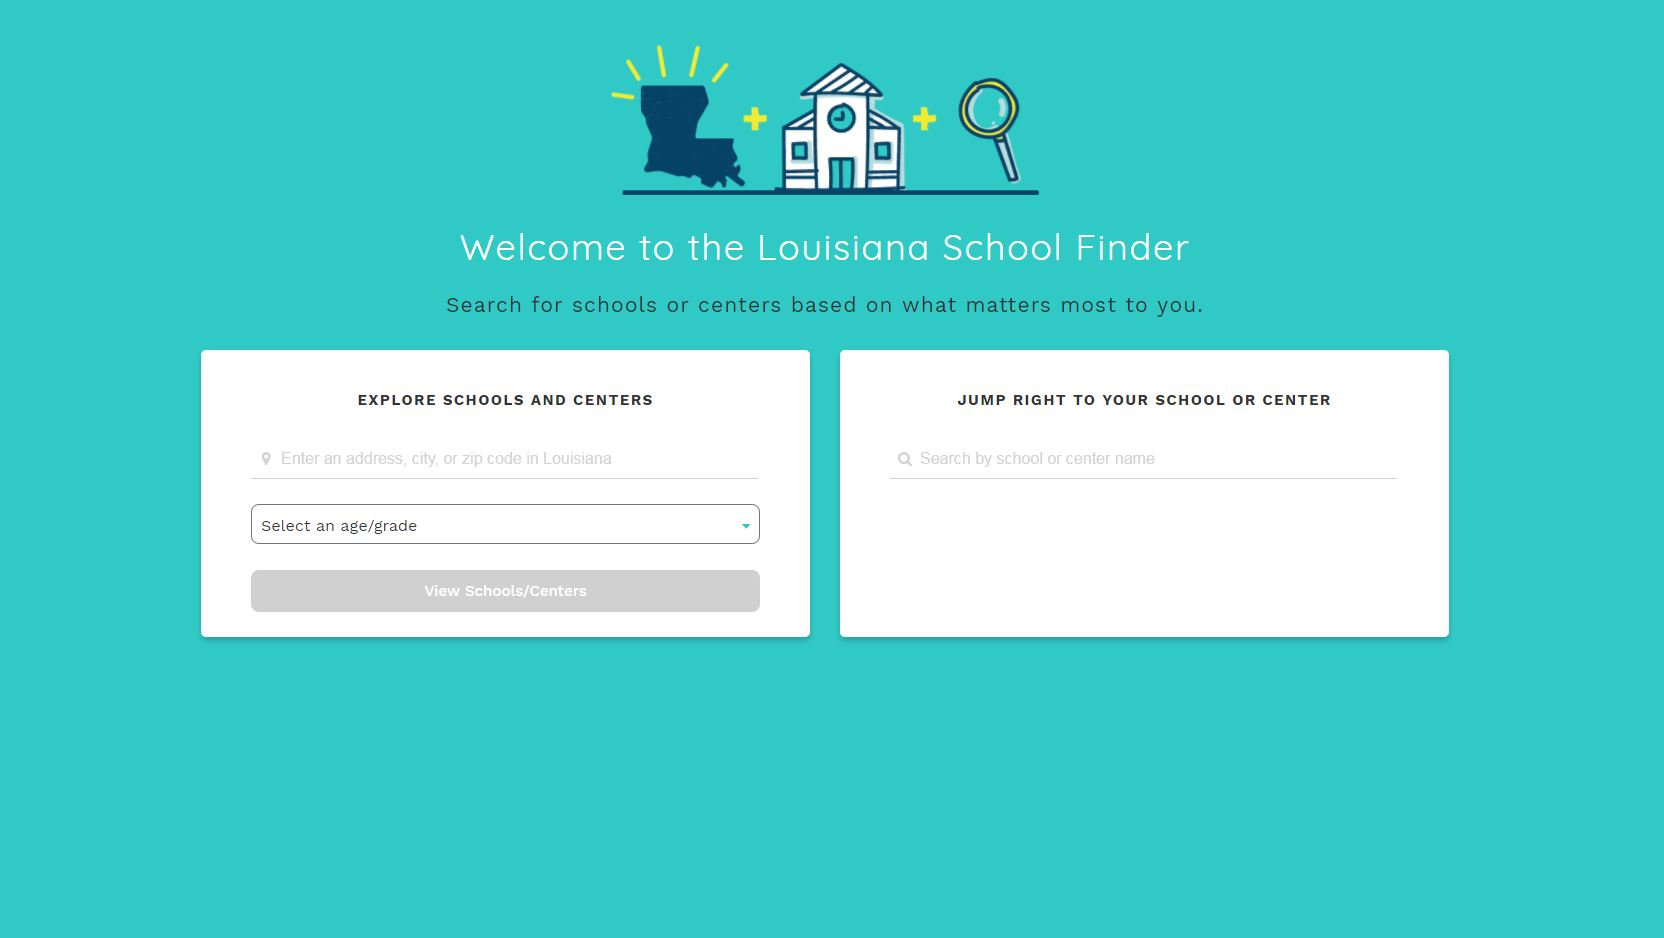 Image of LA school finder